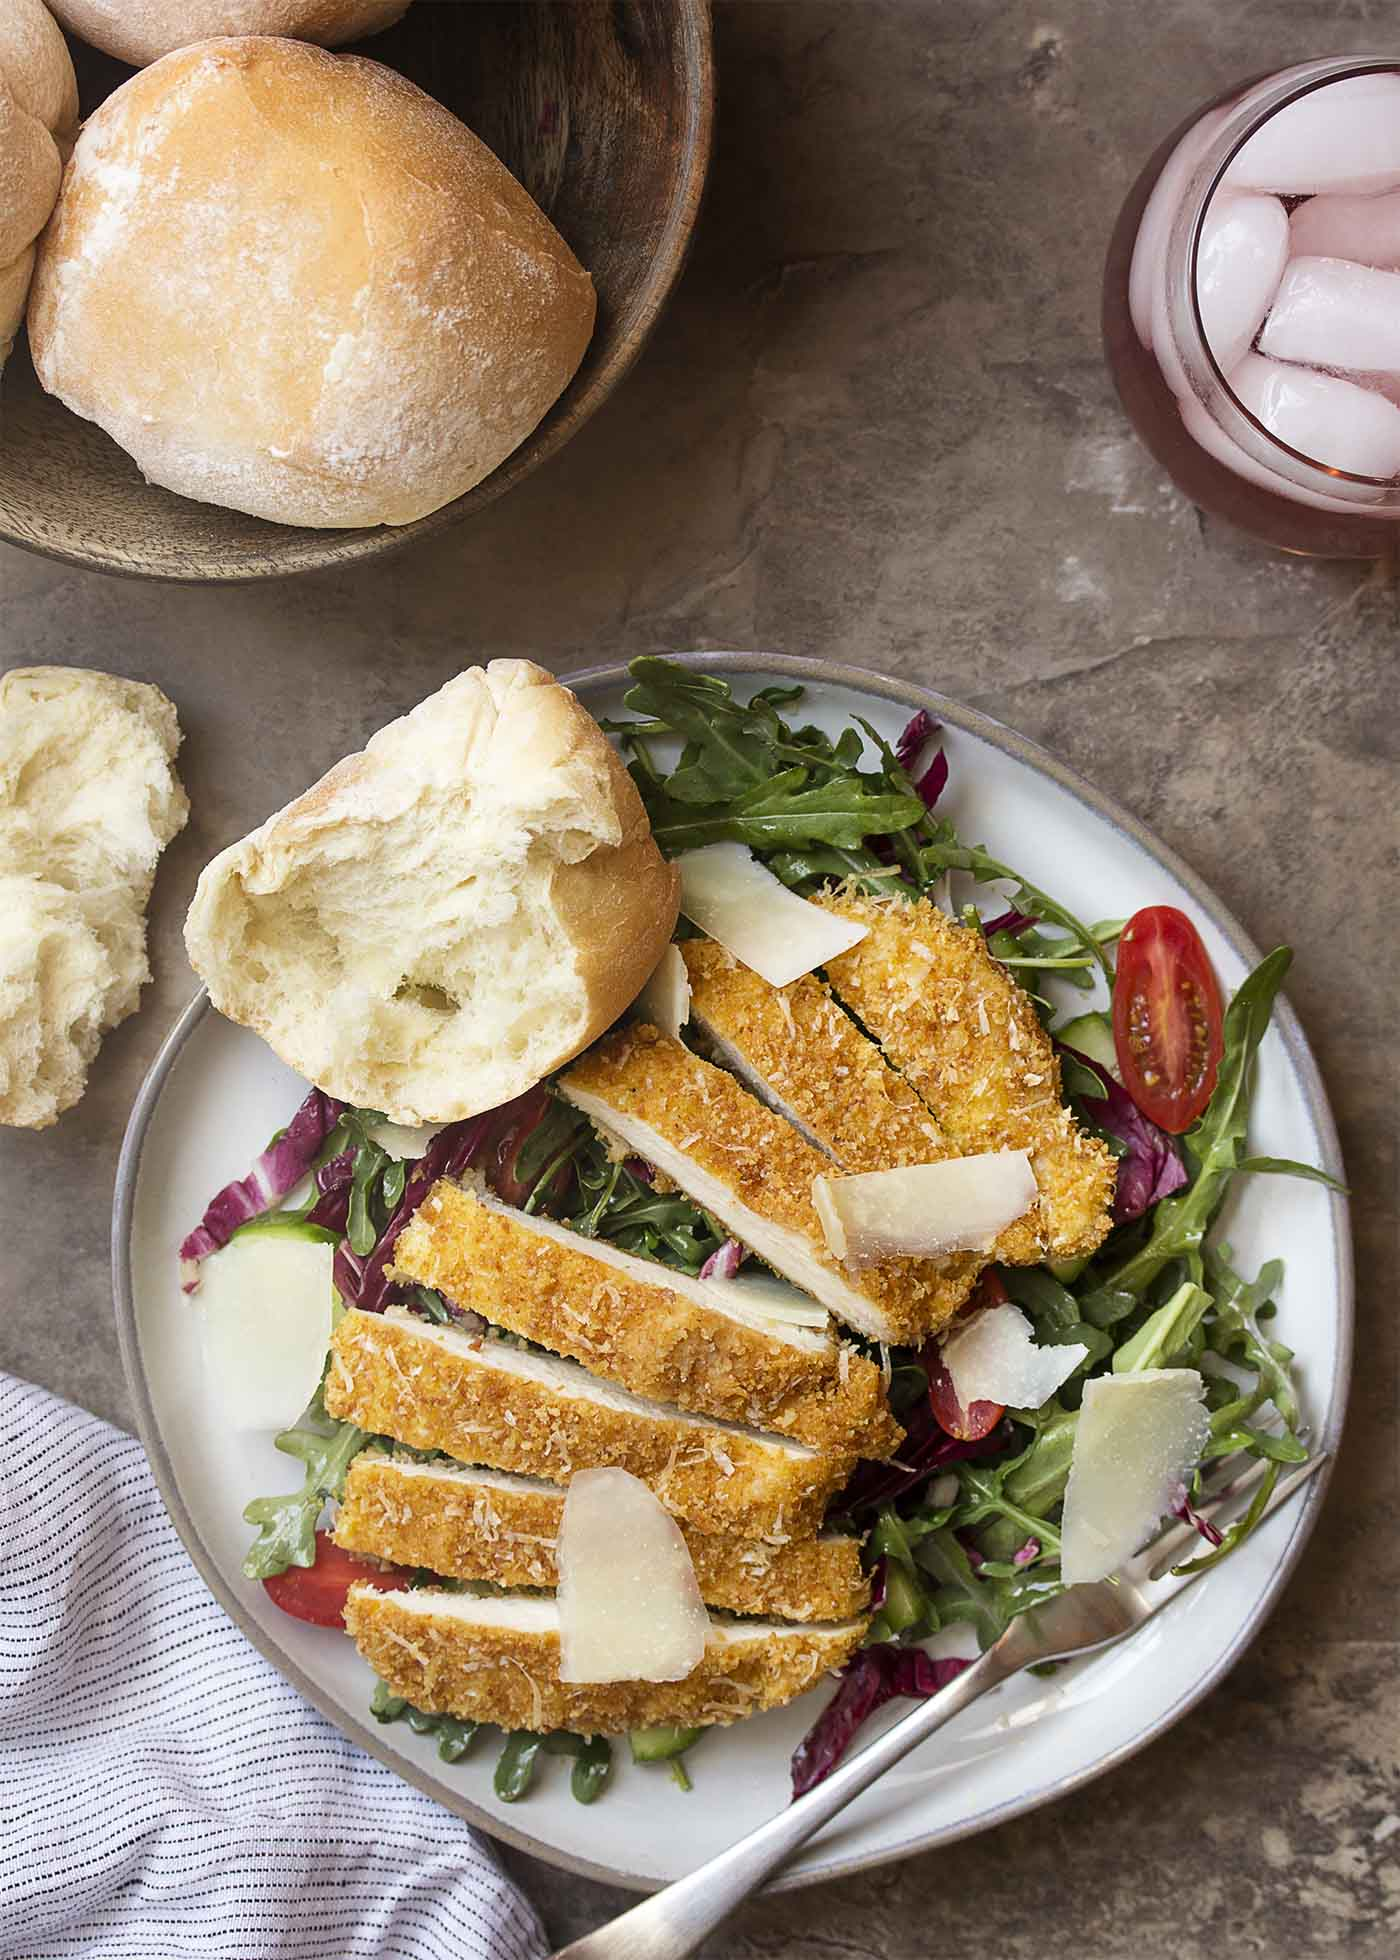 Top view of a plate of salad topped with slices of crispy parmesan baked chicken breast.